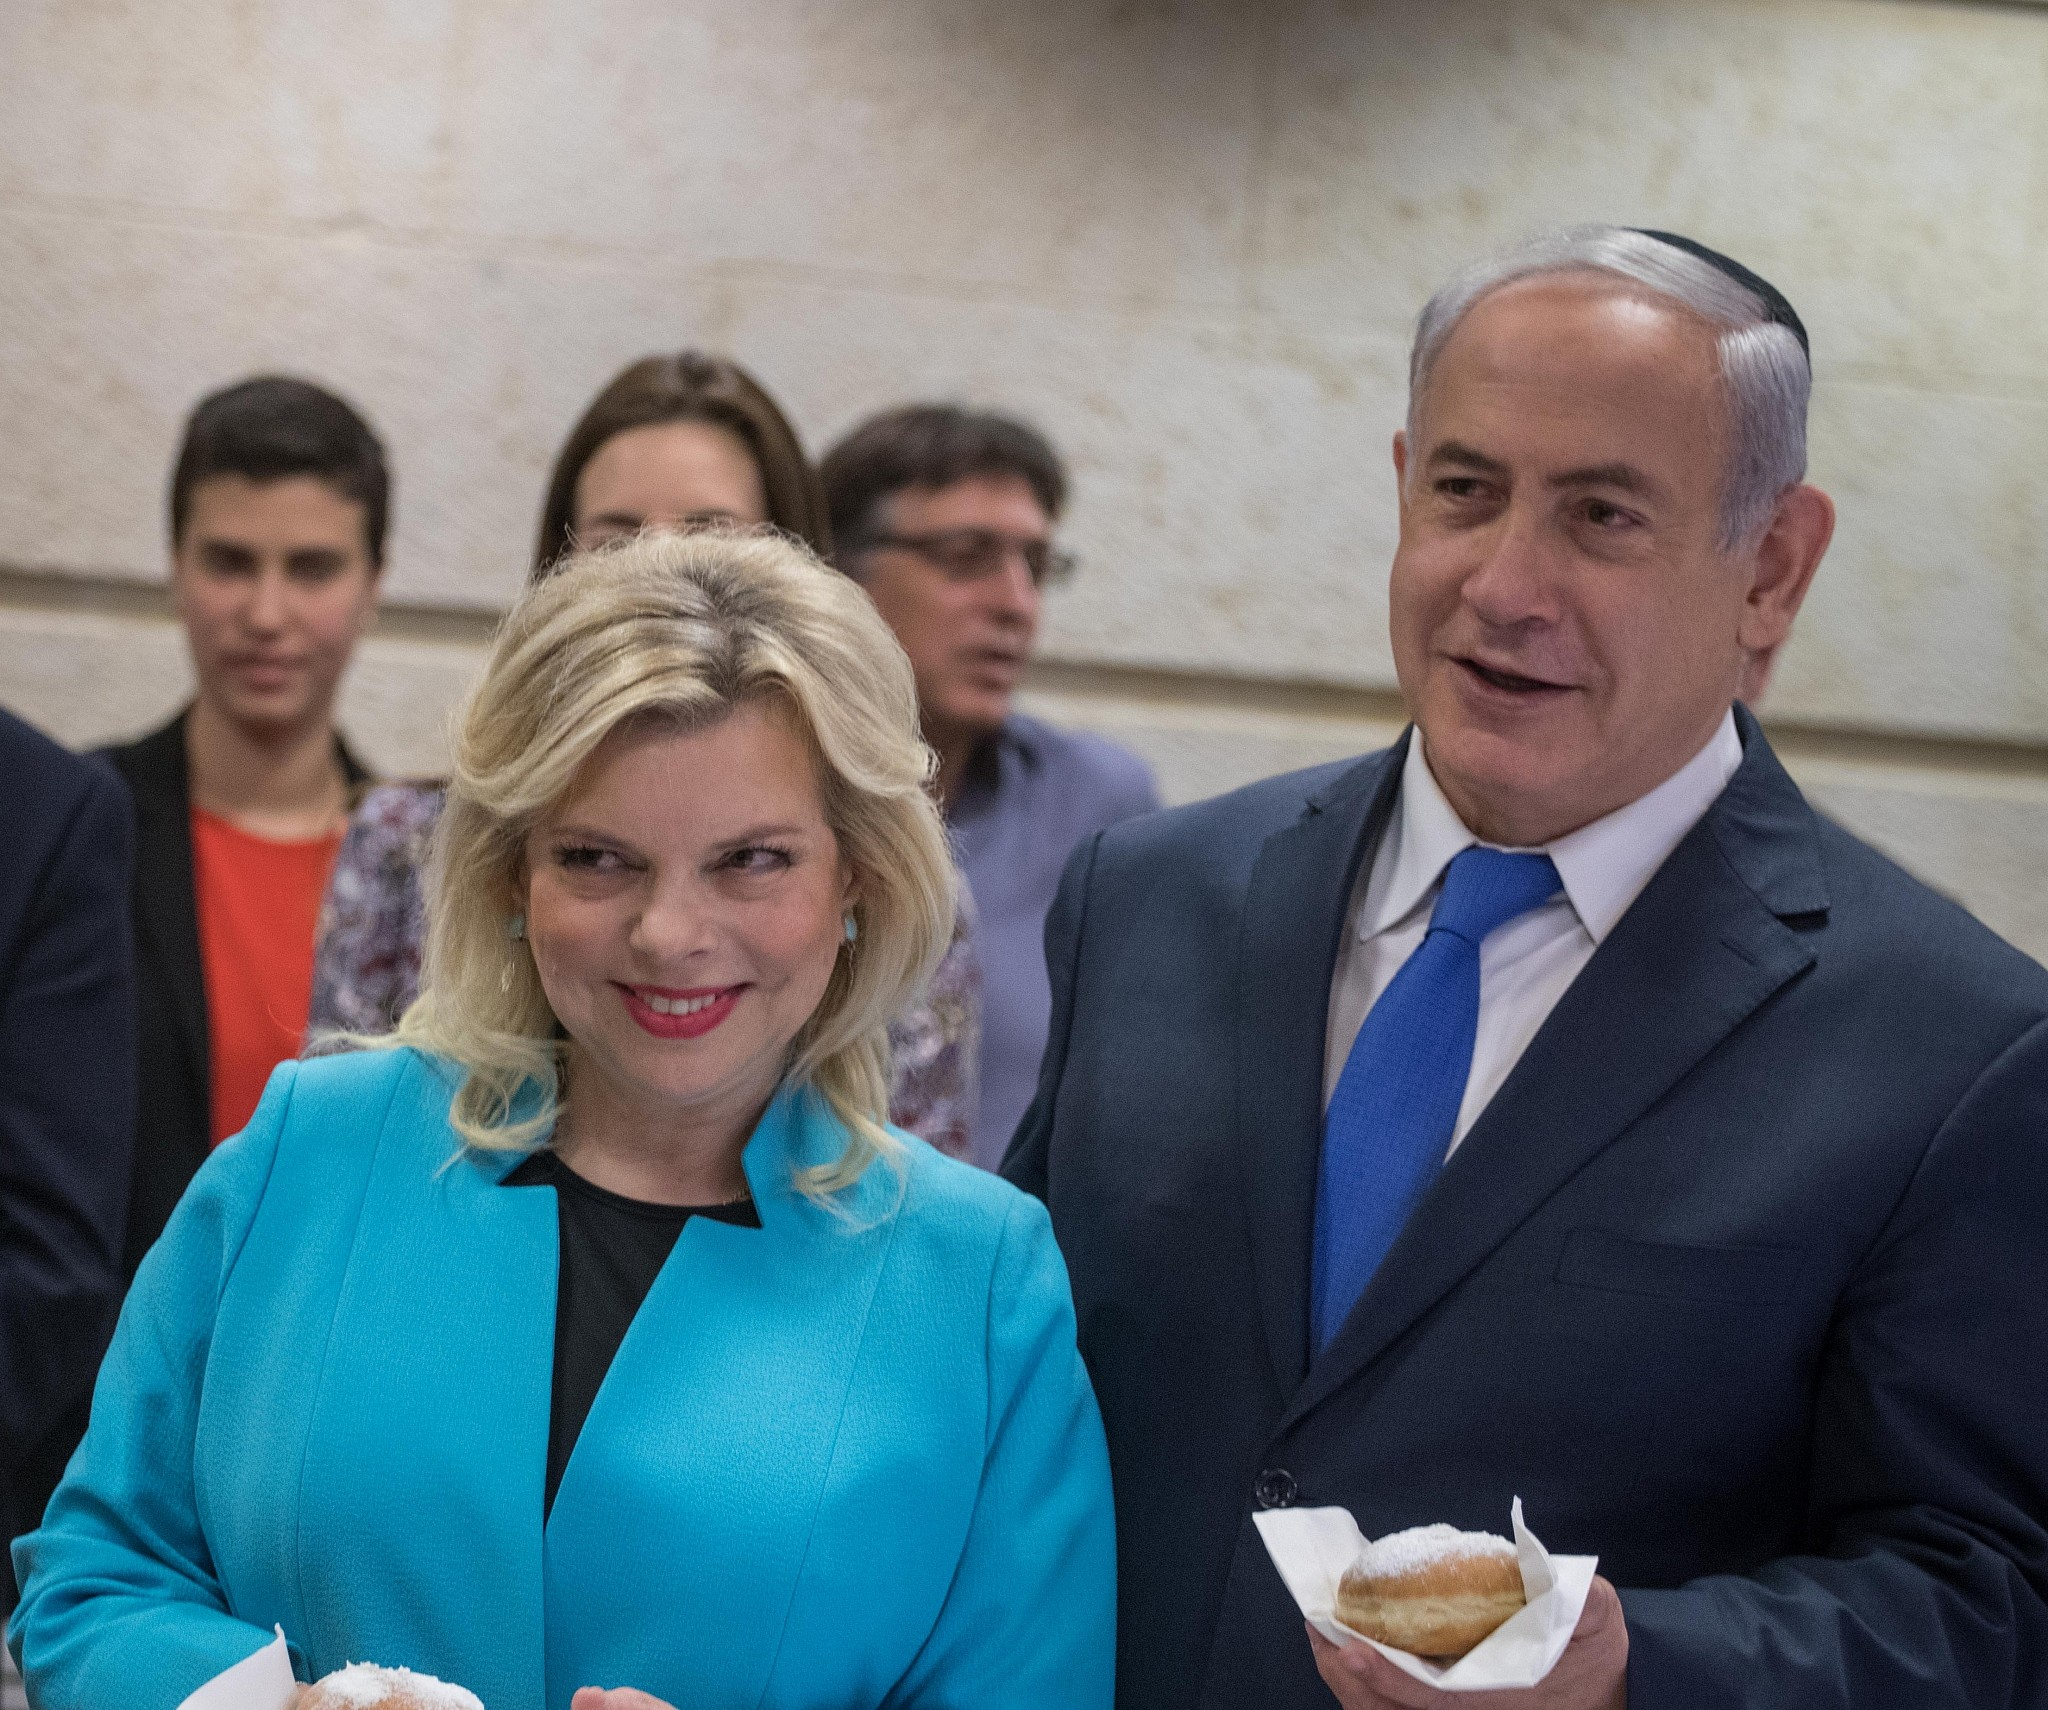 Netanyahu questioned in telecoms corruption case